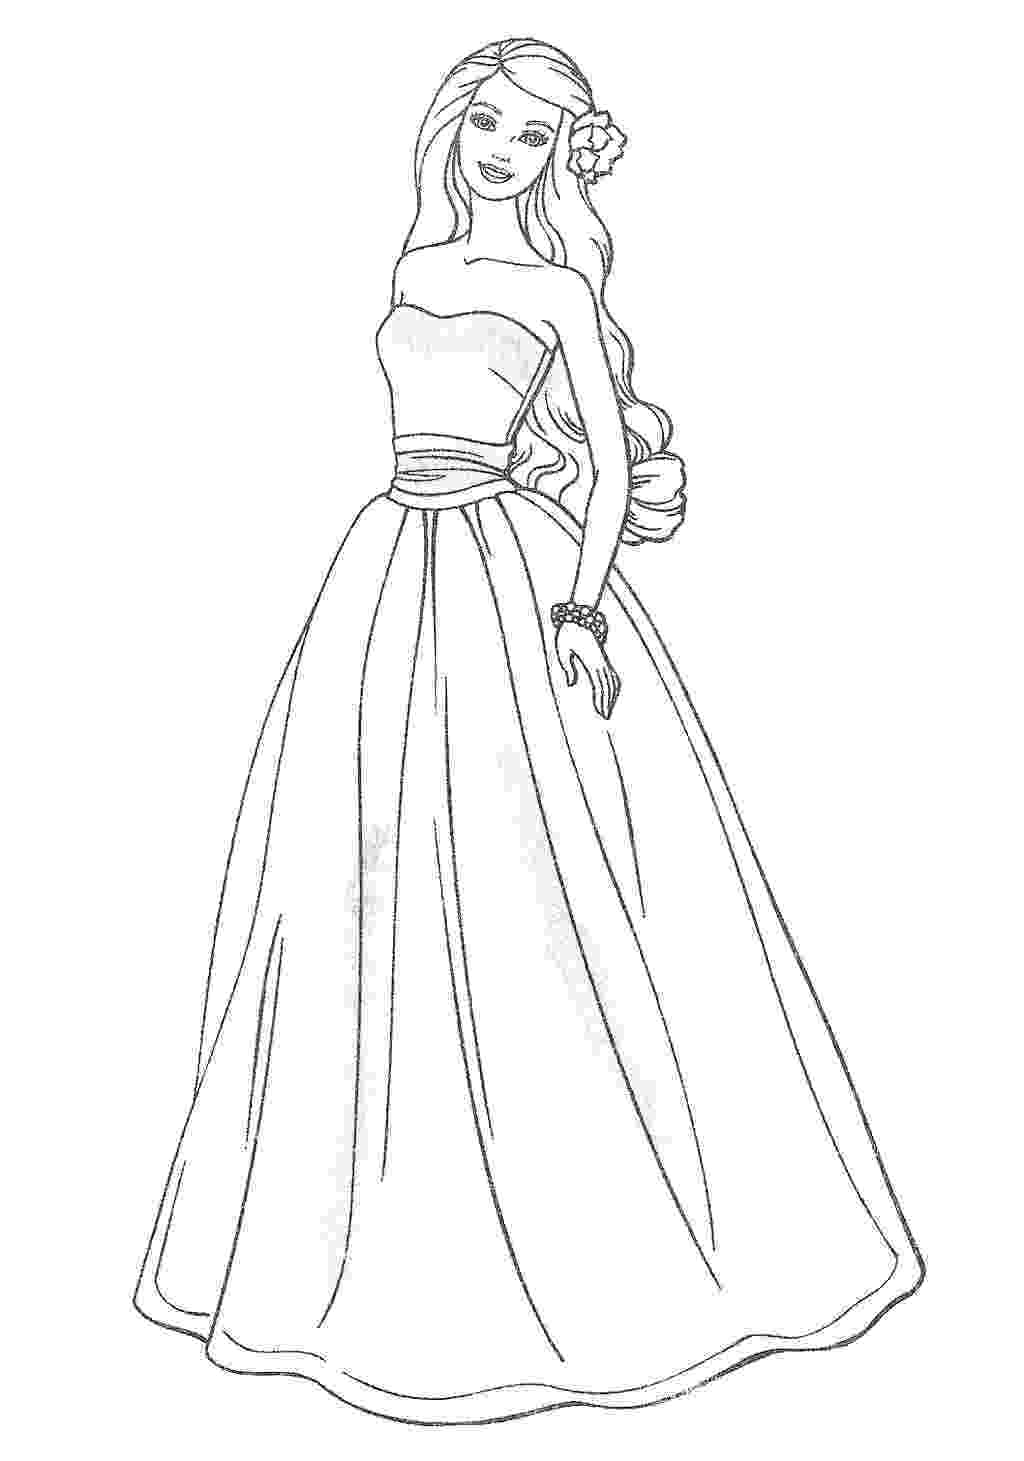 dresses coloring pages dress coloring pages to download and print for free coloring dresses pages